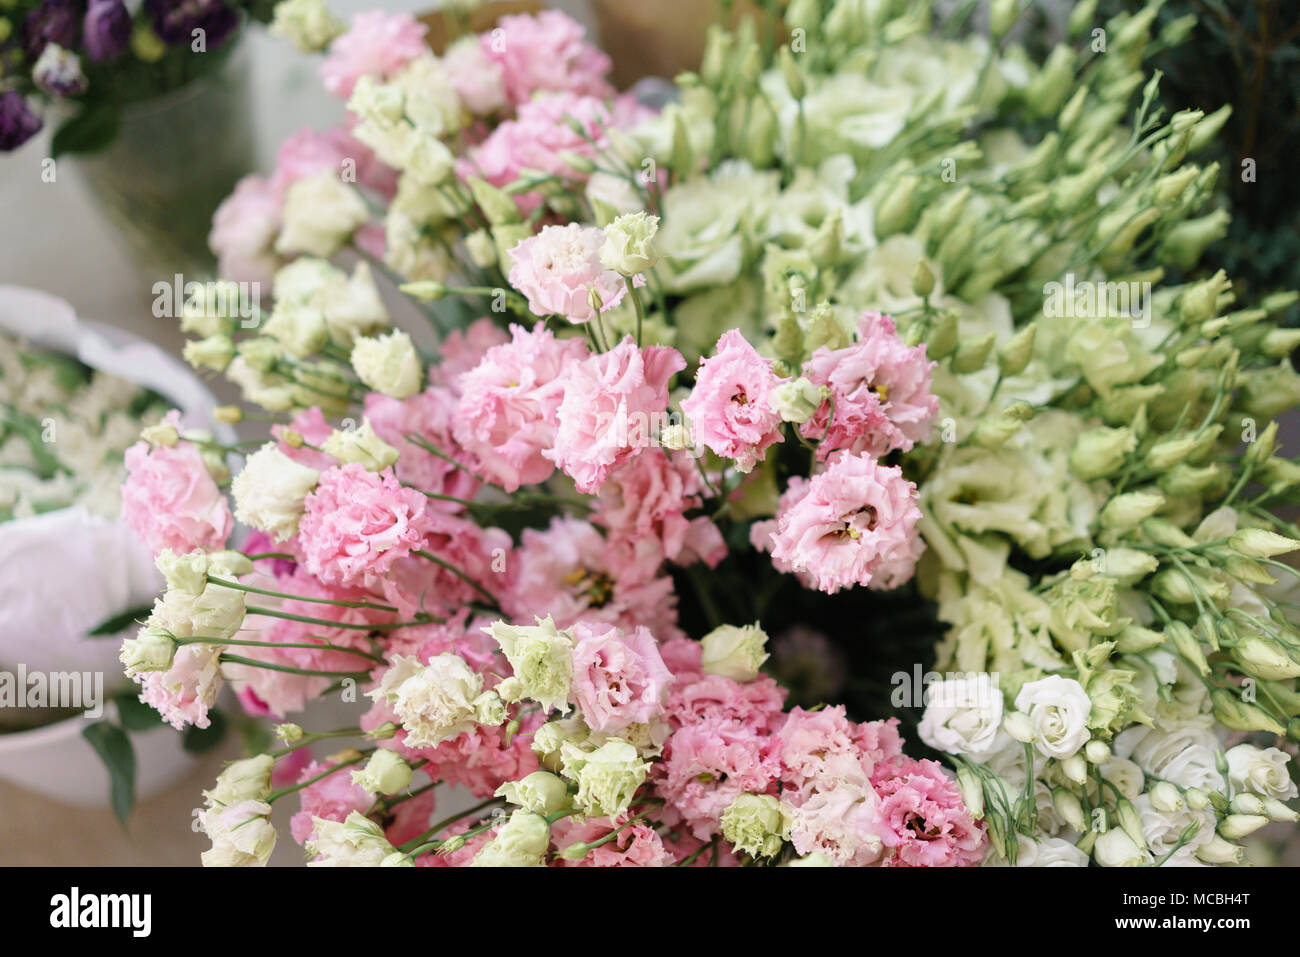 Bouquet of beautiful pink white green color eustoma in vase bouquet of beautiful pink white green color eustoma in vase spring flowers in the cold room of the flower shop mightylinksfo